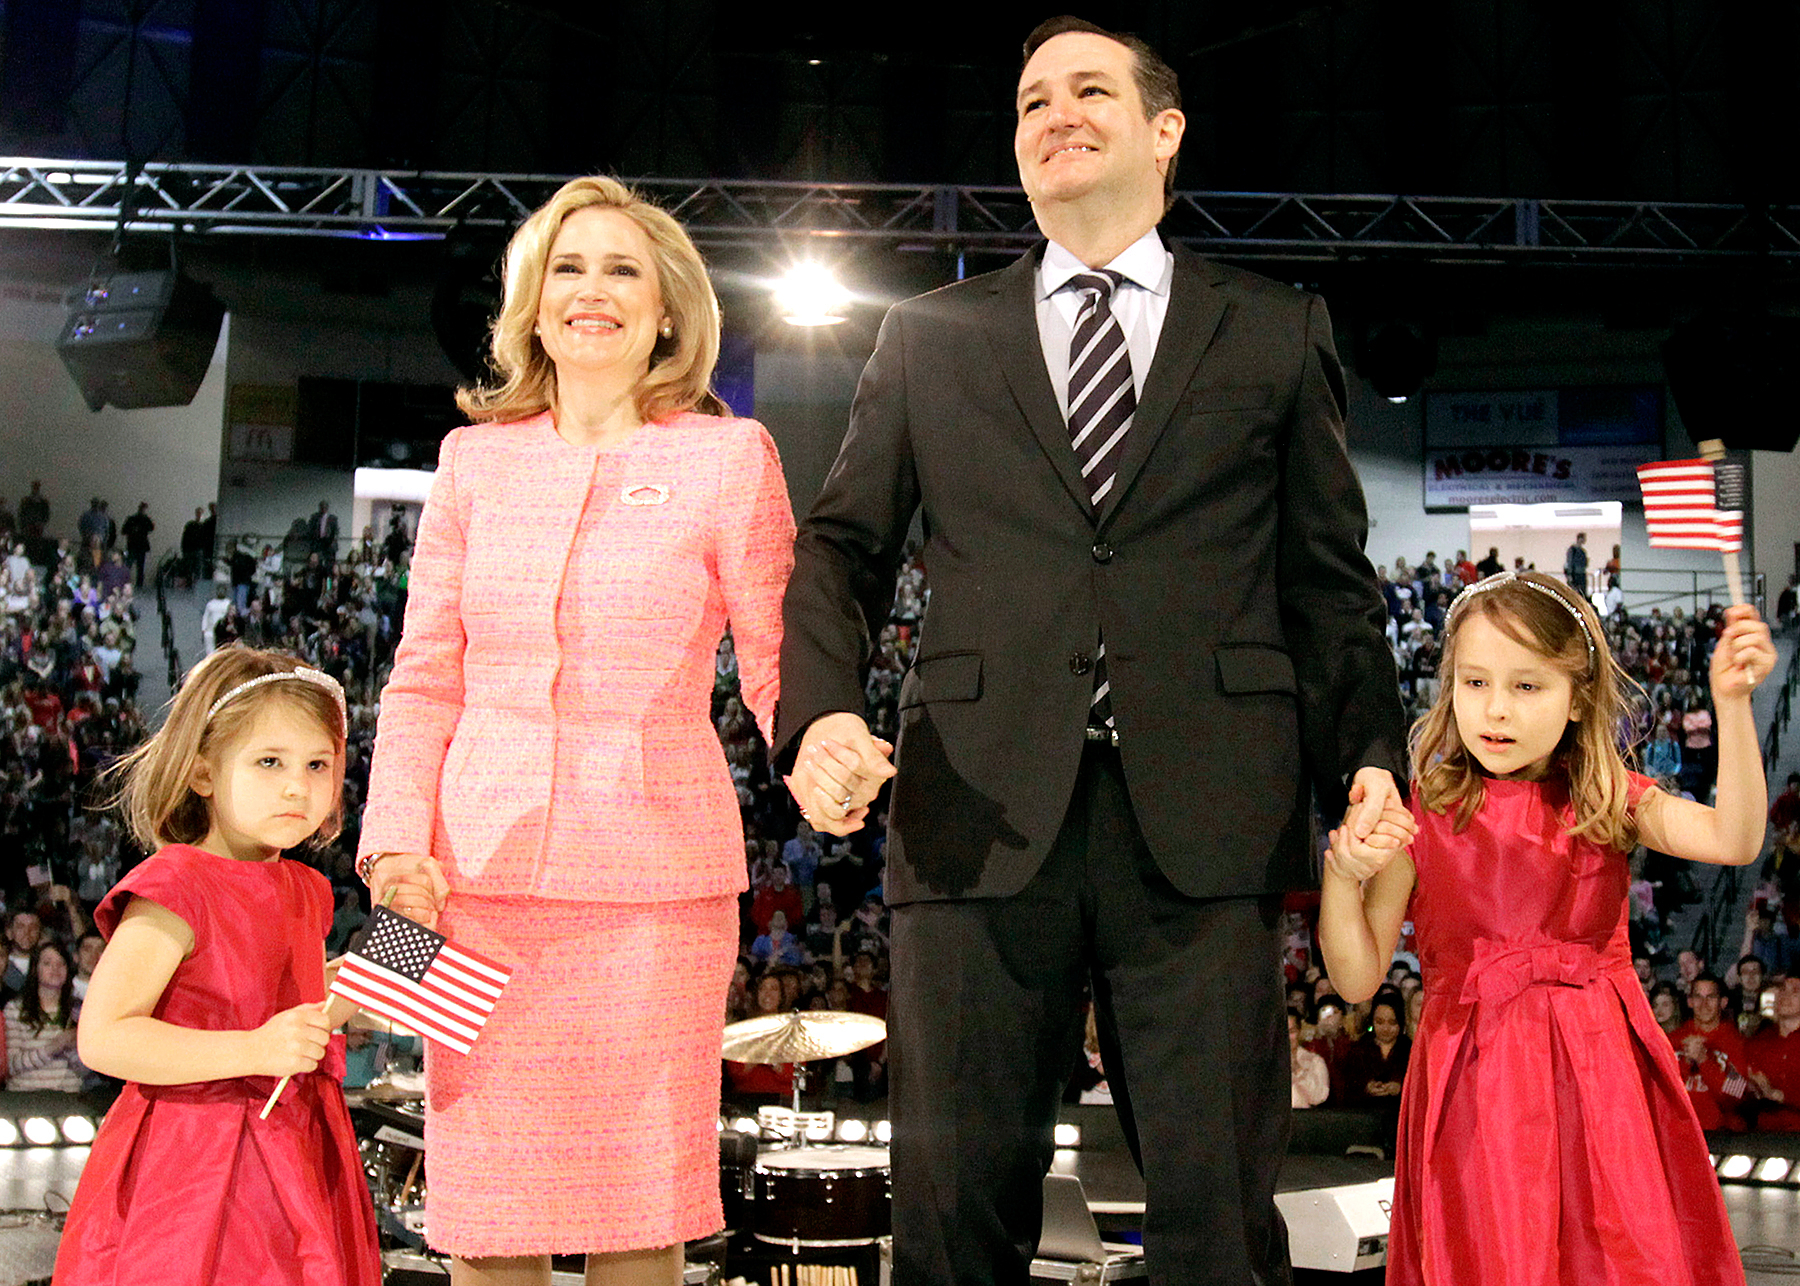 U.S. Senator Ted Cruz, a Republican from Texas, stands with his wife Heidi Nelson Cruz and daughters Catherine Cruz, left, and Caroline Cruz, right, as he marks the start of his presidential campaign by giving the convocation address at Liberty University in Lynchburg, Virginia, on March 23, 2015.